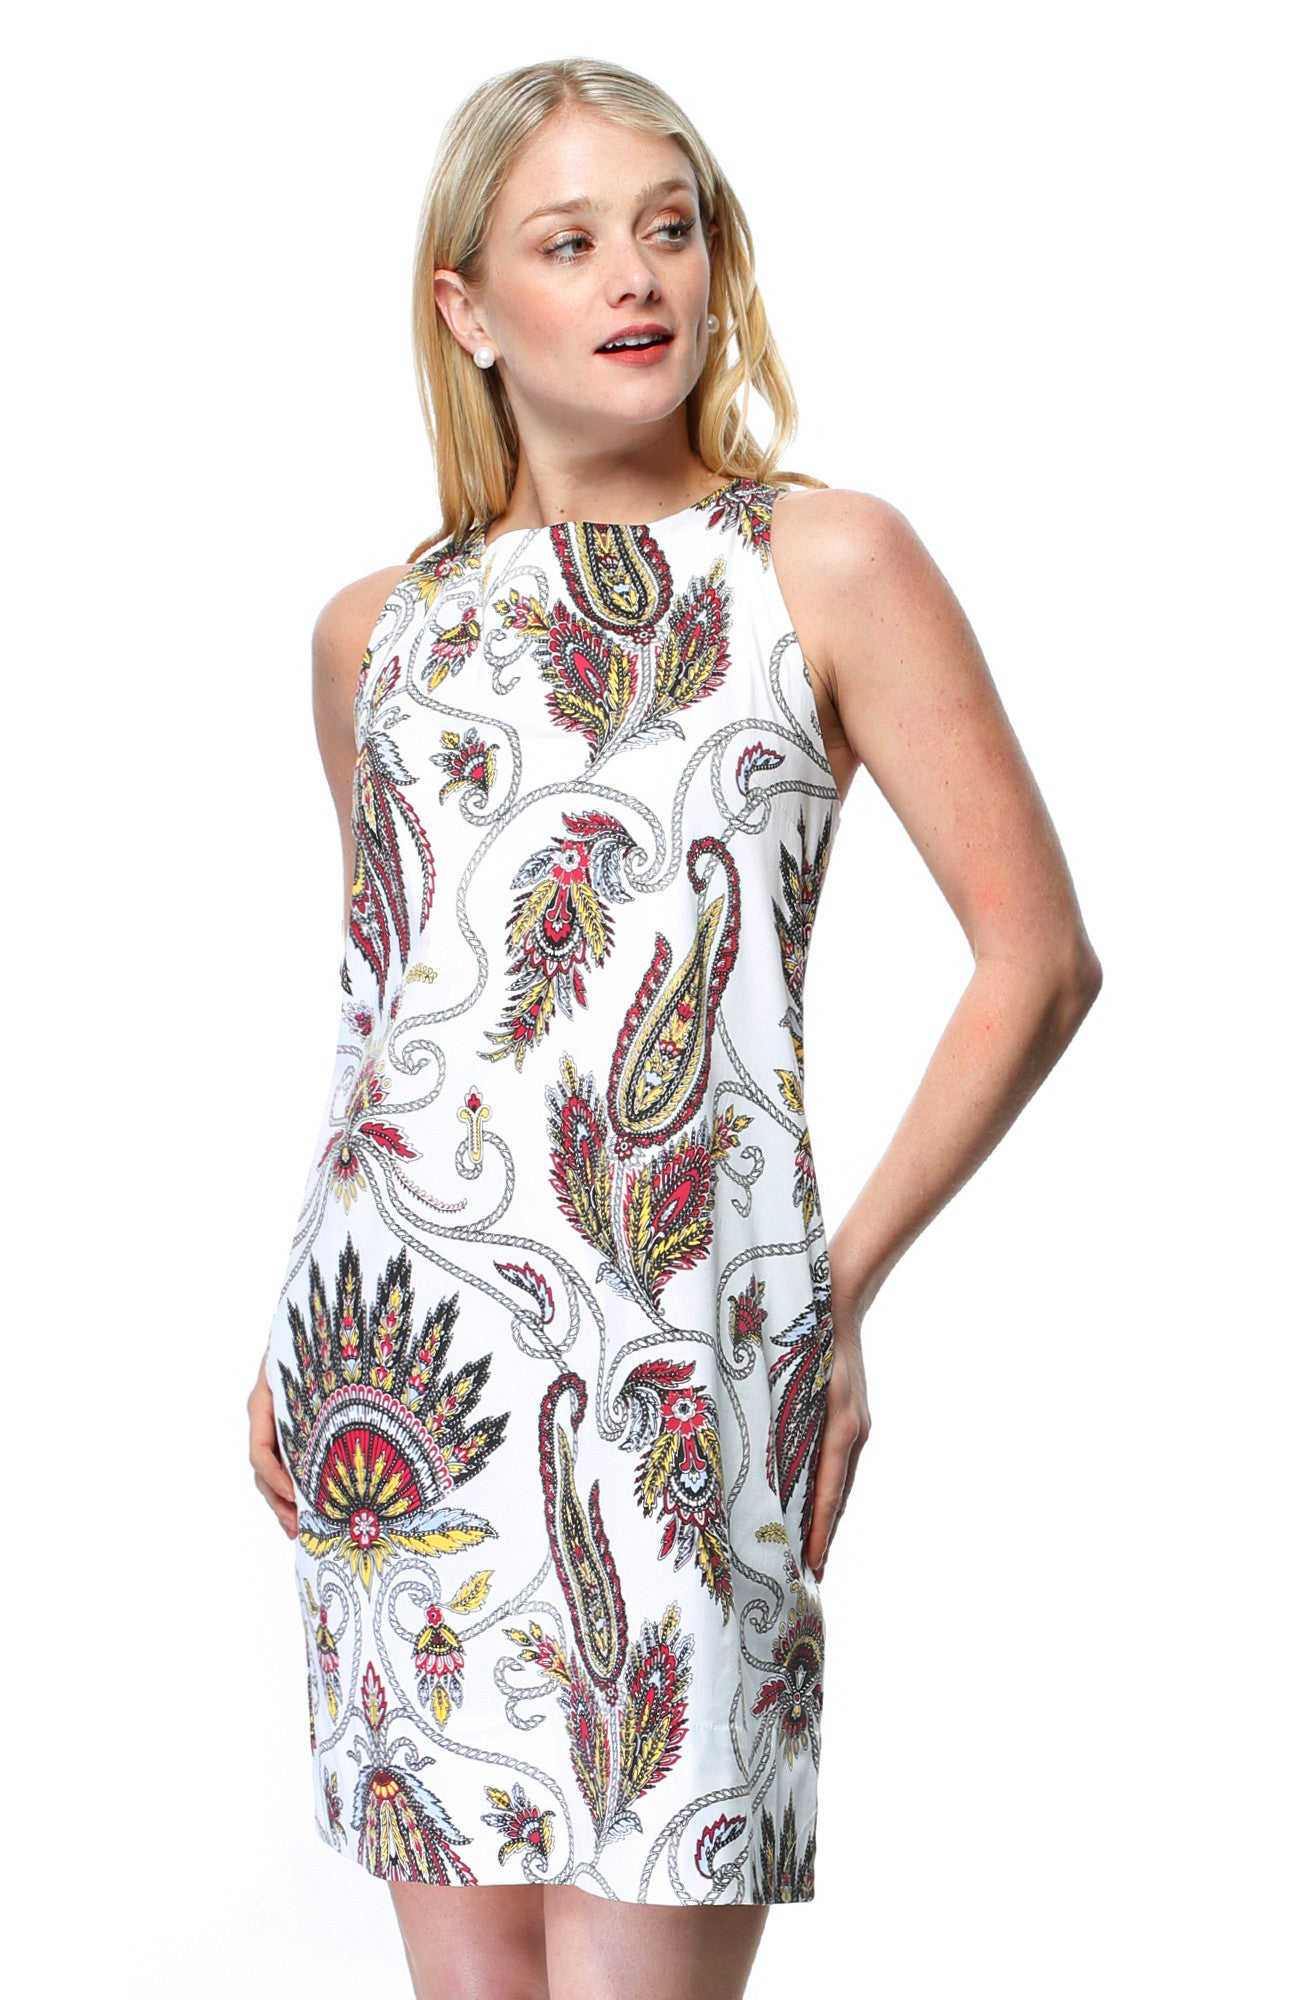 Mod Squad Plume Dress - 1 Only